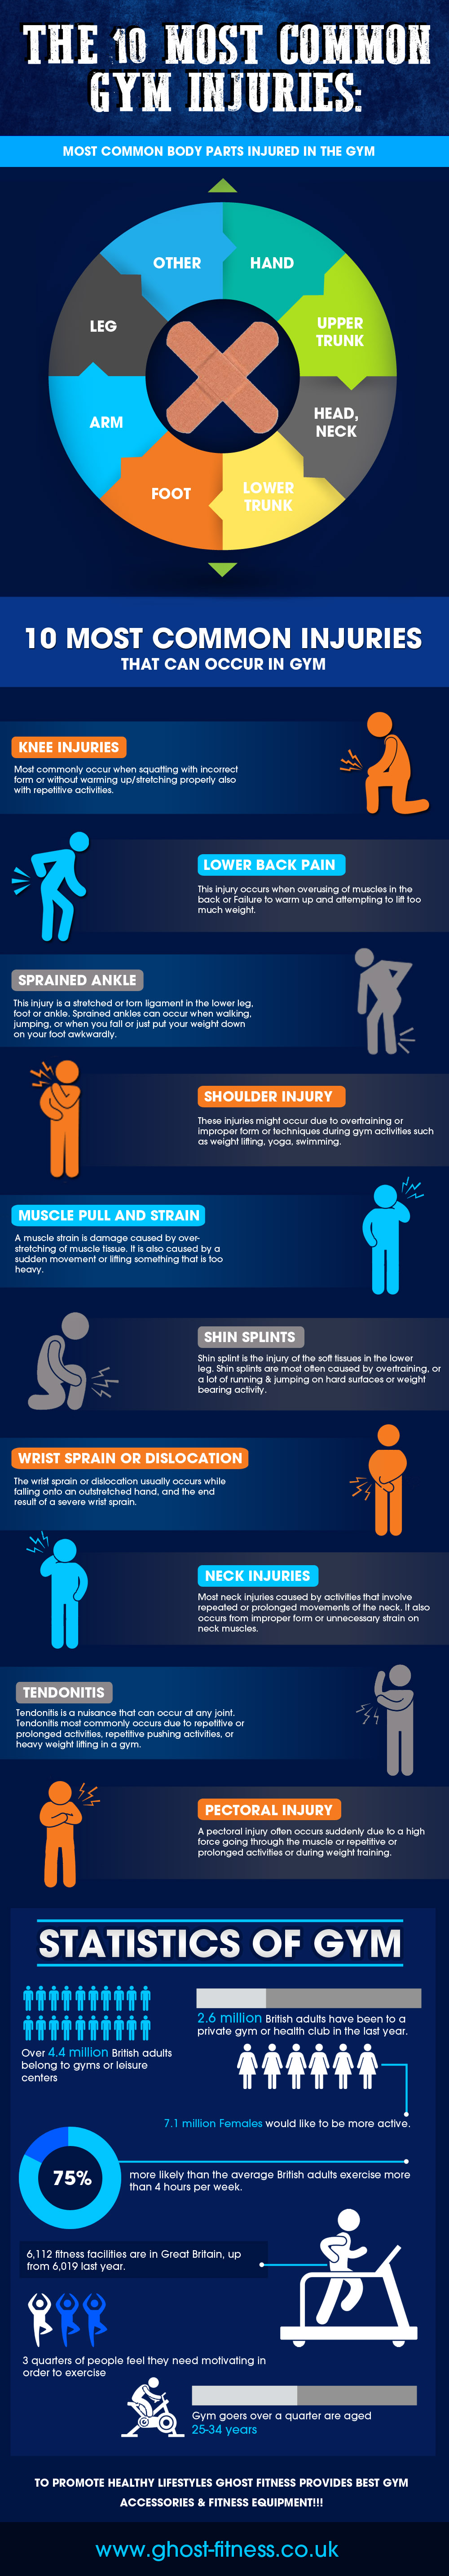 Most common Gym Injuries